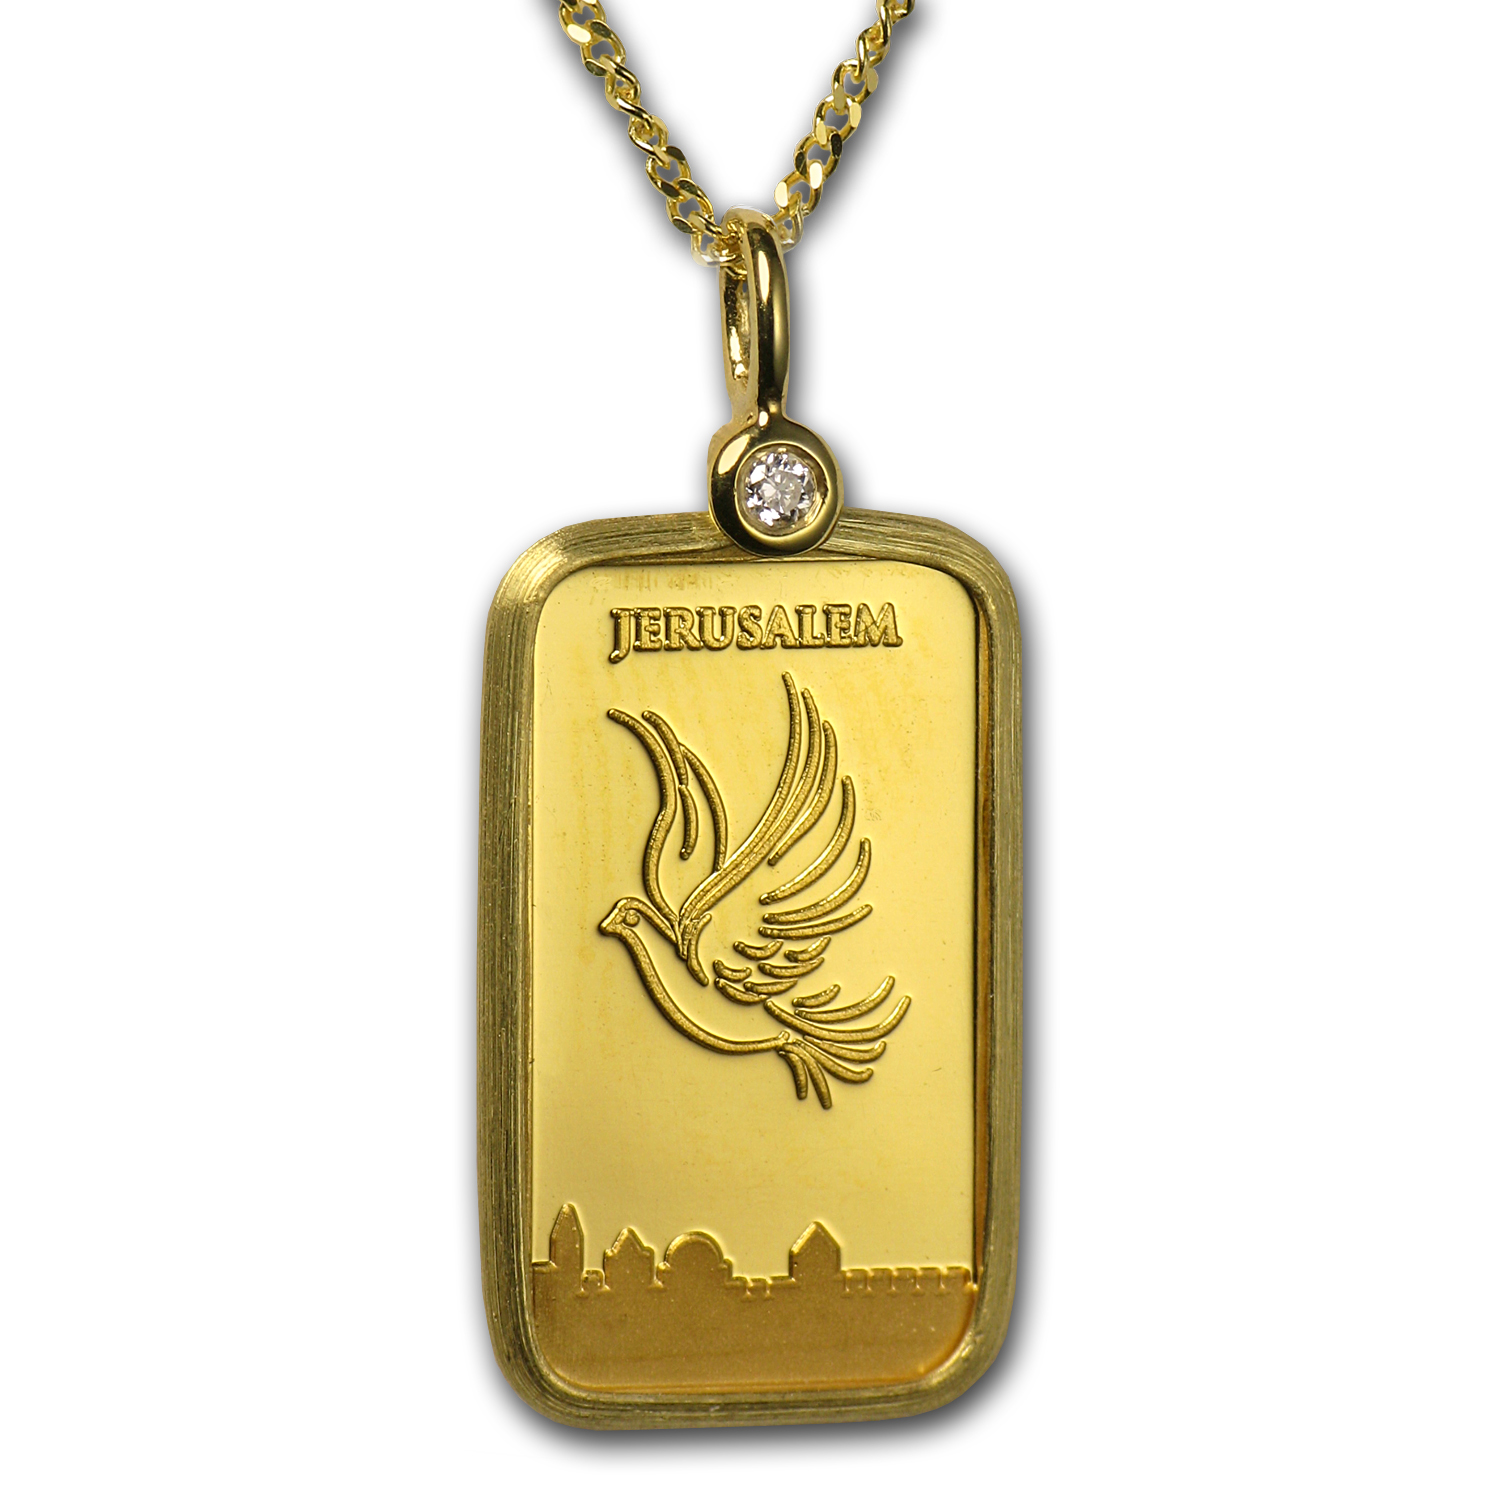 1 Gram Gold Bar Dove of Peace Necklace w/Diamond (AGW .05417 oz)